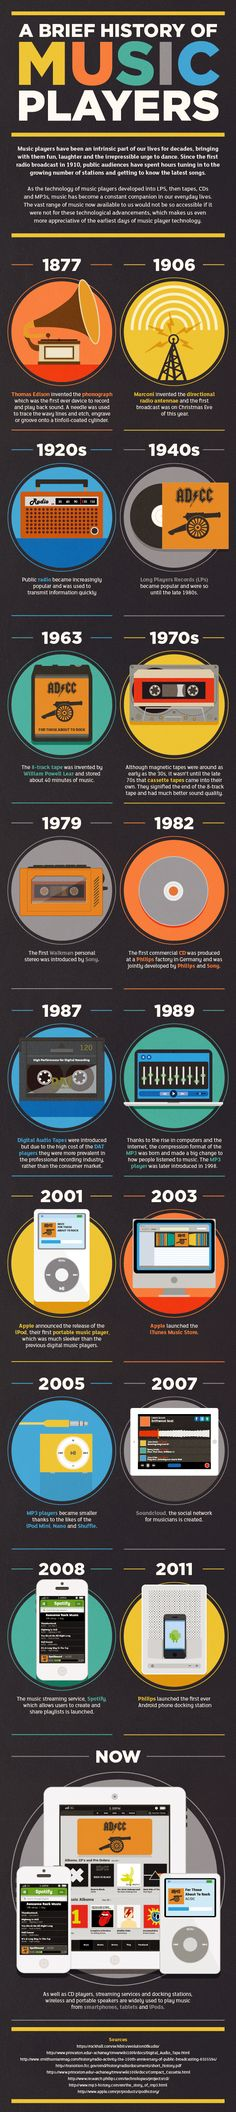 """""""The evoloution of technolgy in music"""" #musictech #infographic #evoloutionomusictech"""